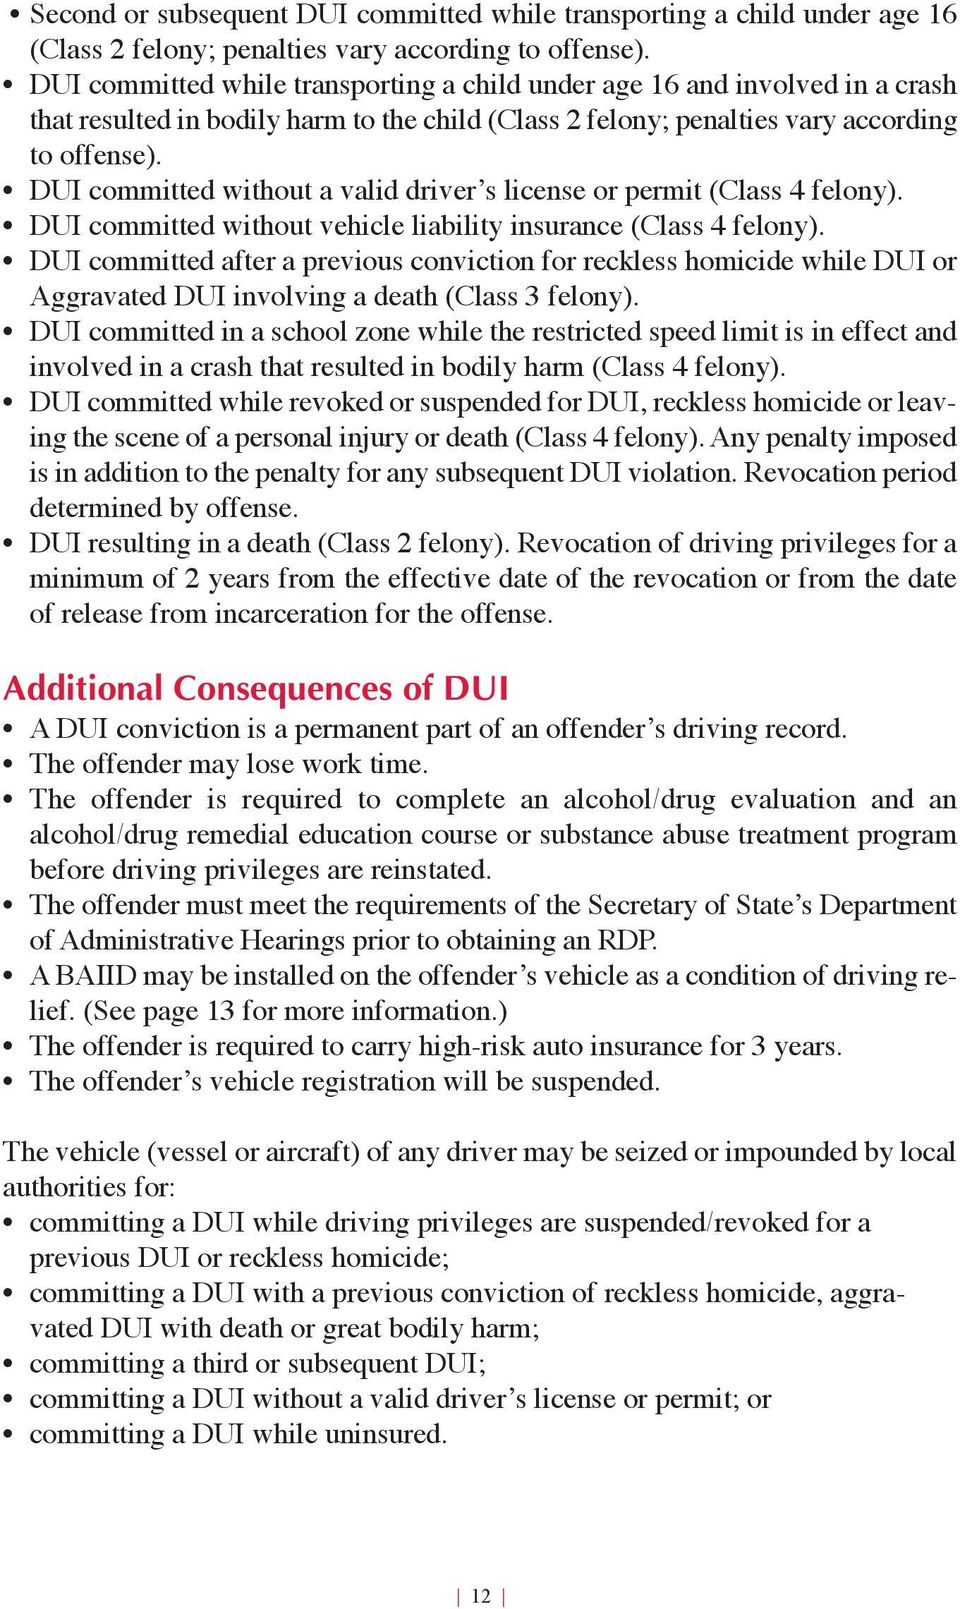 DUI committed without a valid driver s license or permit (Class 4 felony). DUI committed without vehicle liability insurance (Class 4 felony).